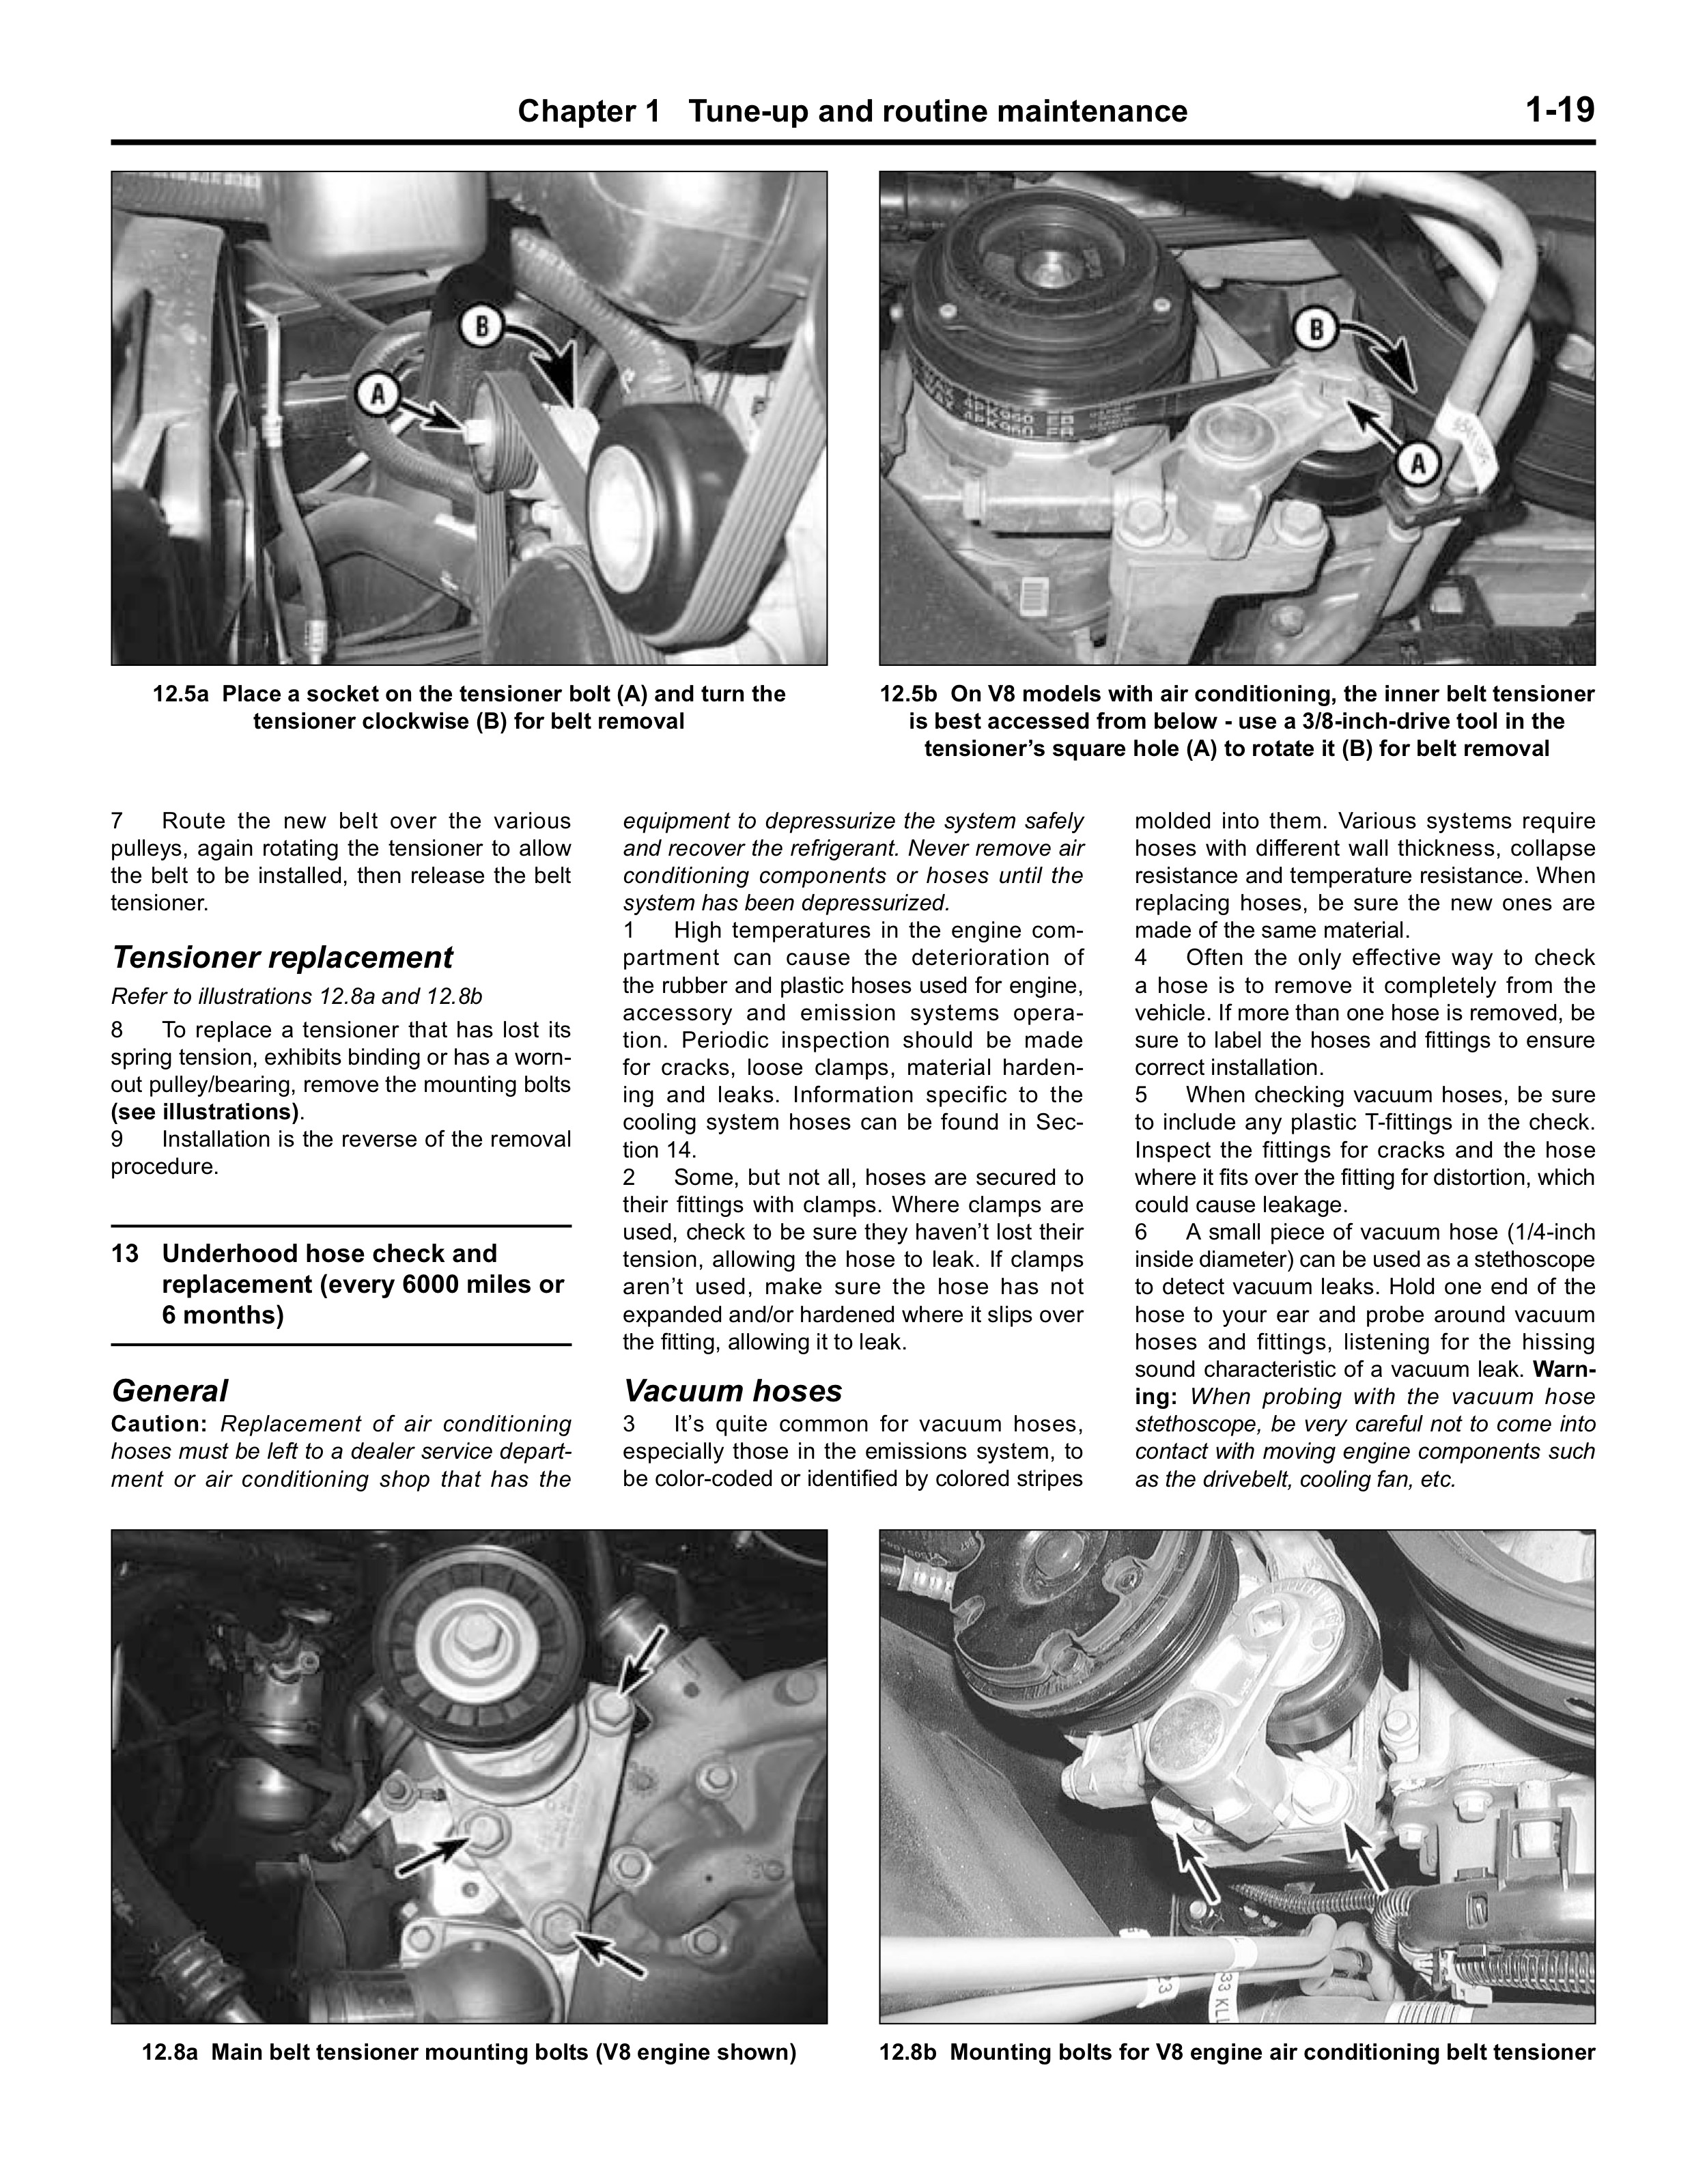 Attractive Ford Bronco Service Manual Inspiration - Electrical ...